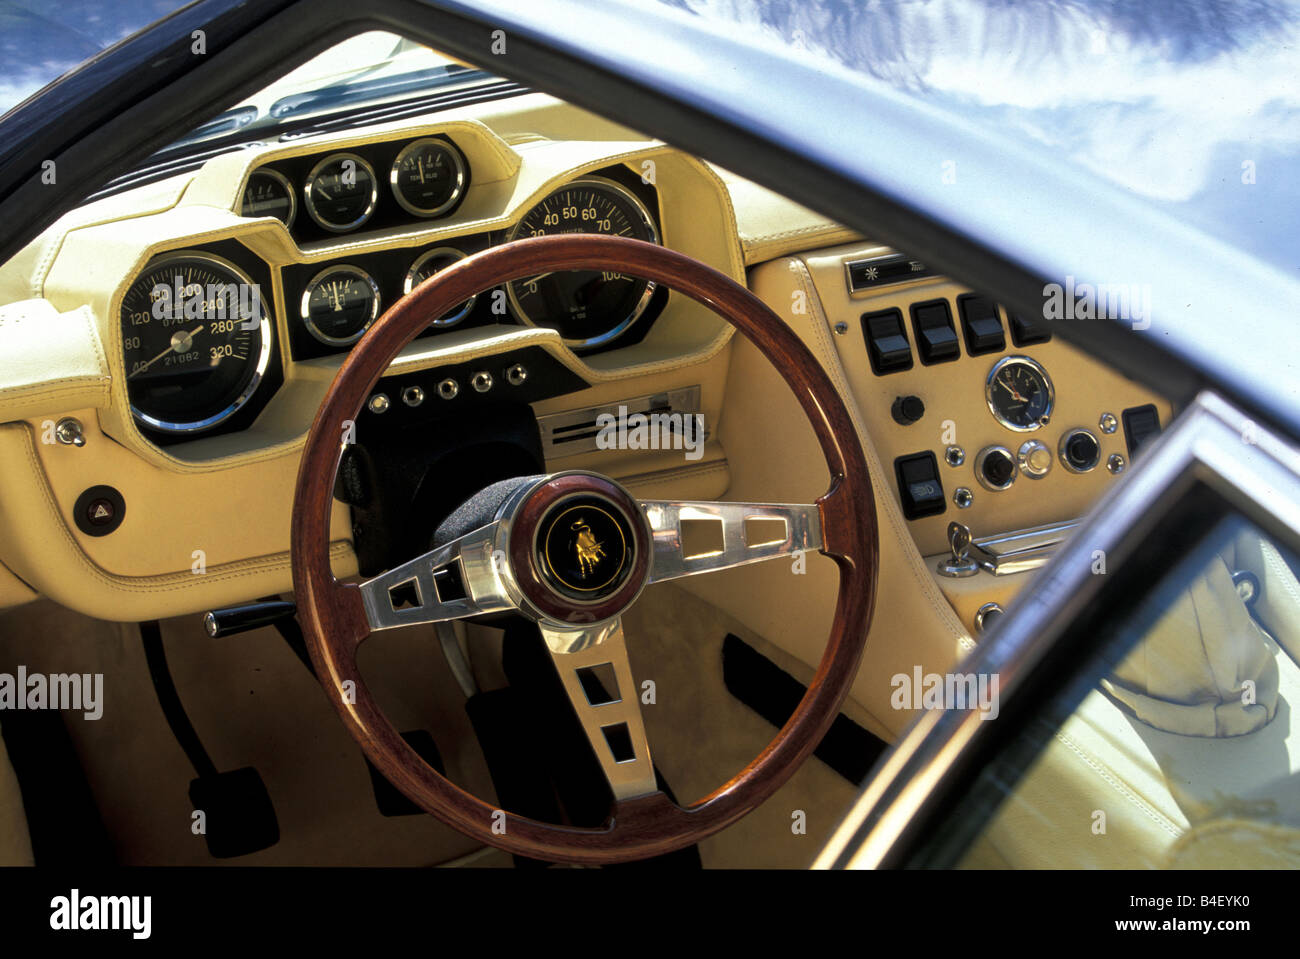 car lamborghini espada 400 gt vintage car 1960s sixties 1970s stock photo 19998020 alamy. Black Bedroom Furniture Sets. Home Design Ideas